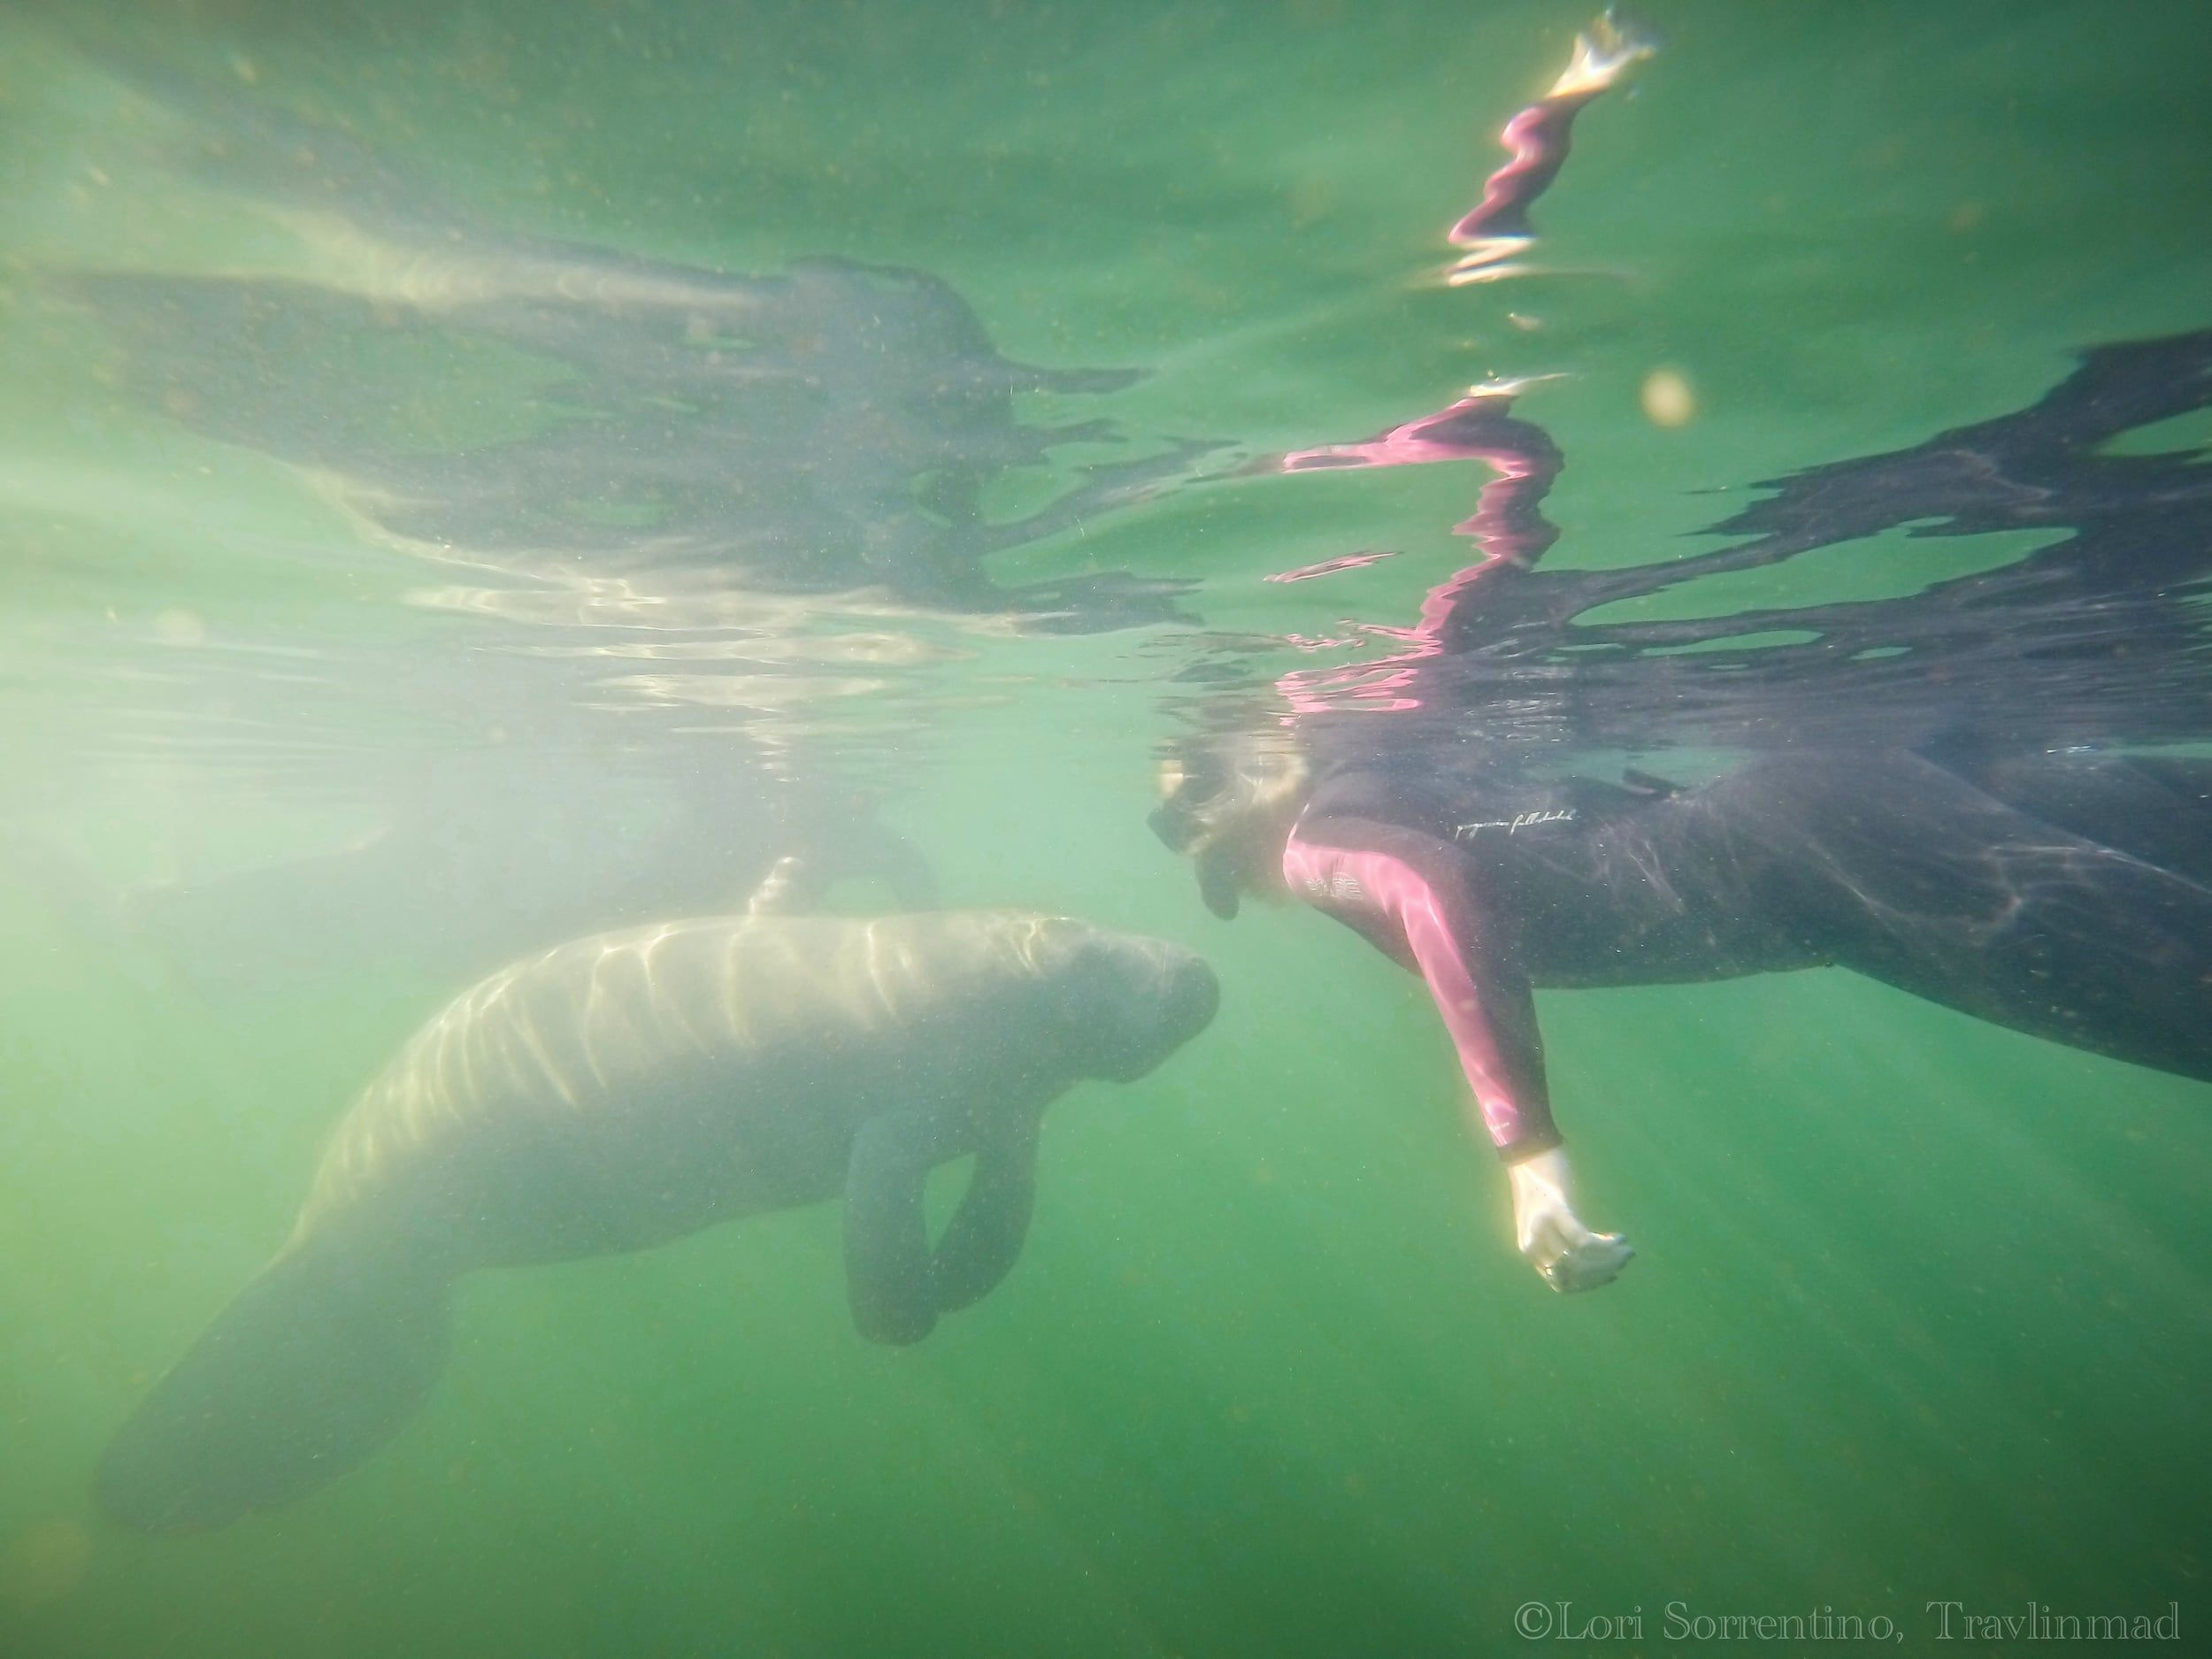 The Best Florida Manatee Tours to Swim with Manatees in